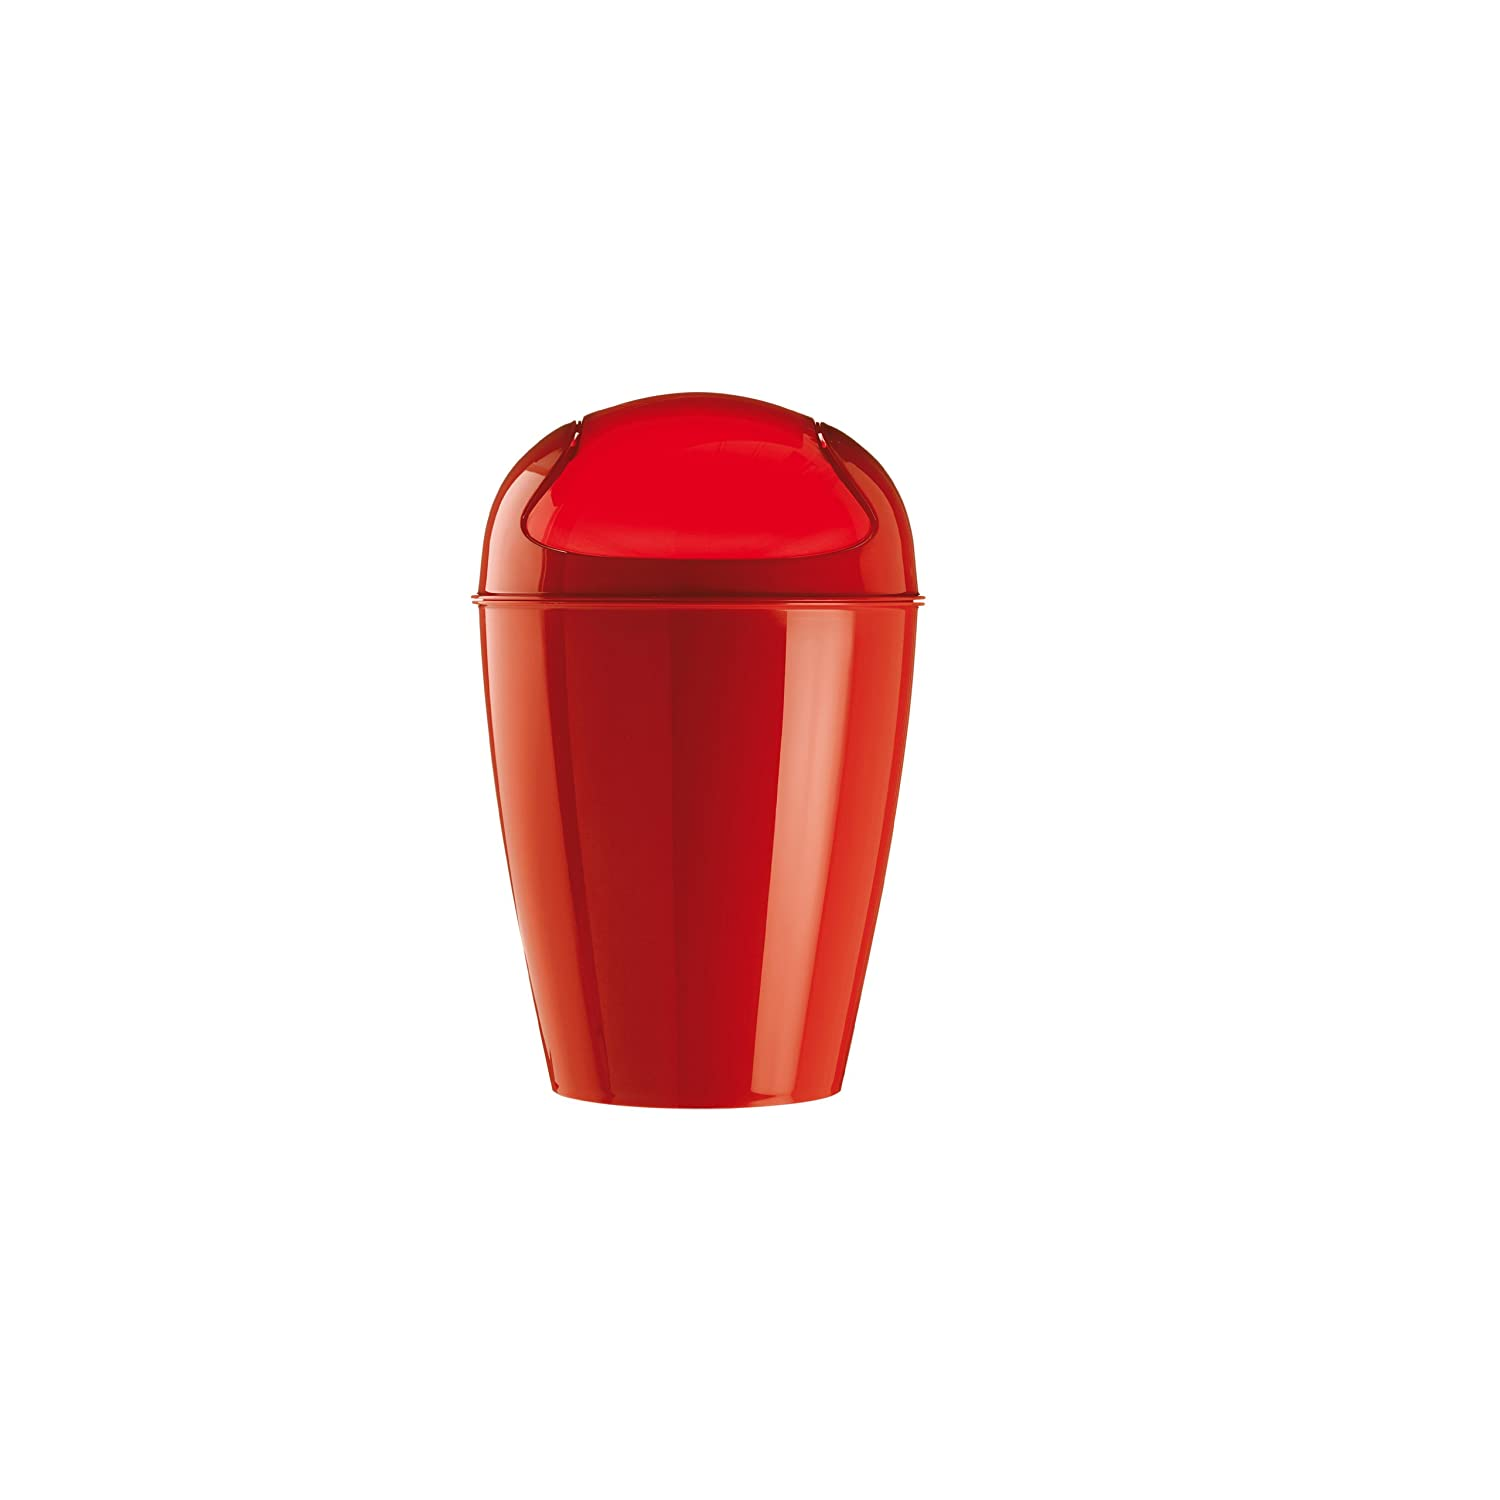 Koziol Del Extra-Small Swing-Top Wastebasket, Strawberry Koziol ideas for friends GmbH 5778555